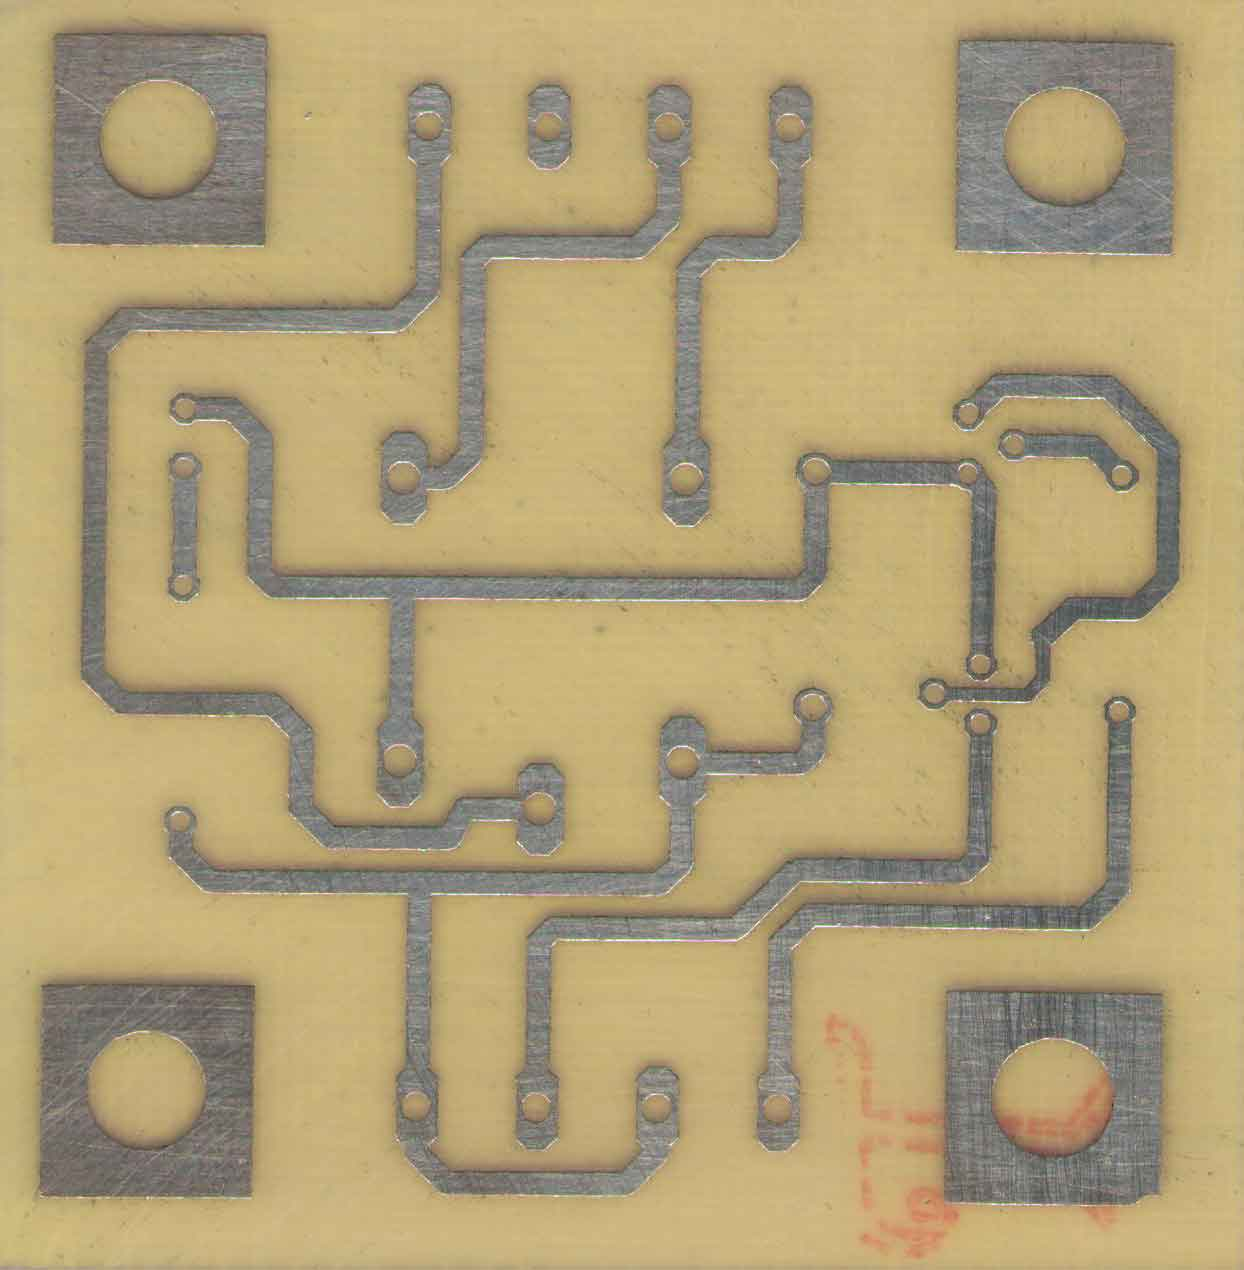 Pcb Fab In A Box The 8min Circuit Board System Easy To Use Designing Boards Is Simple For Sample Image 7